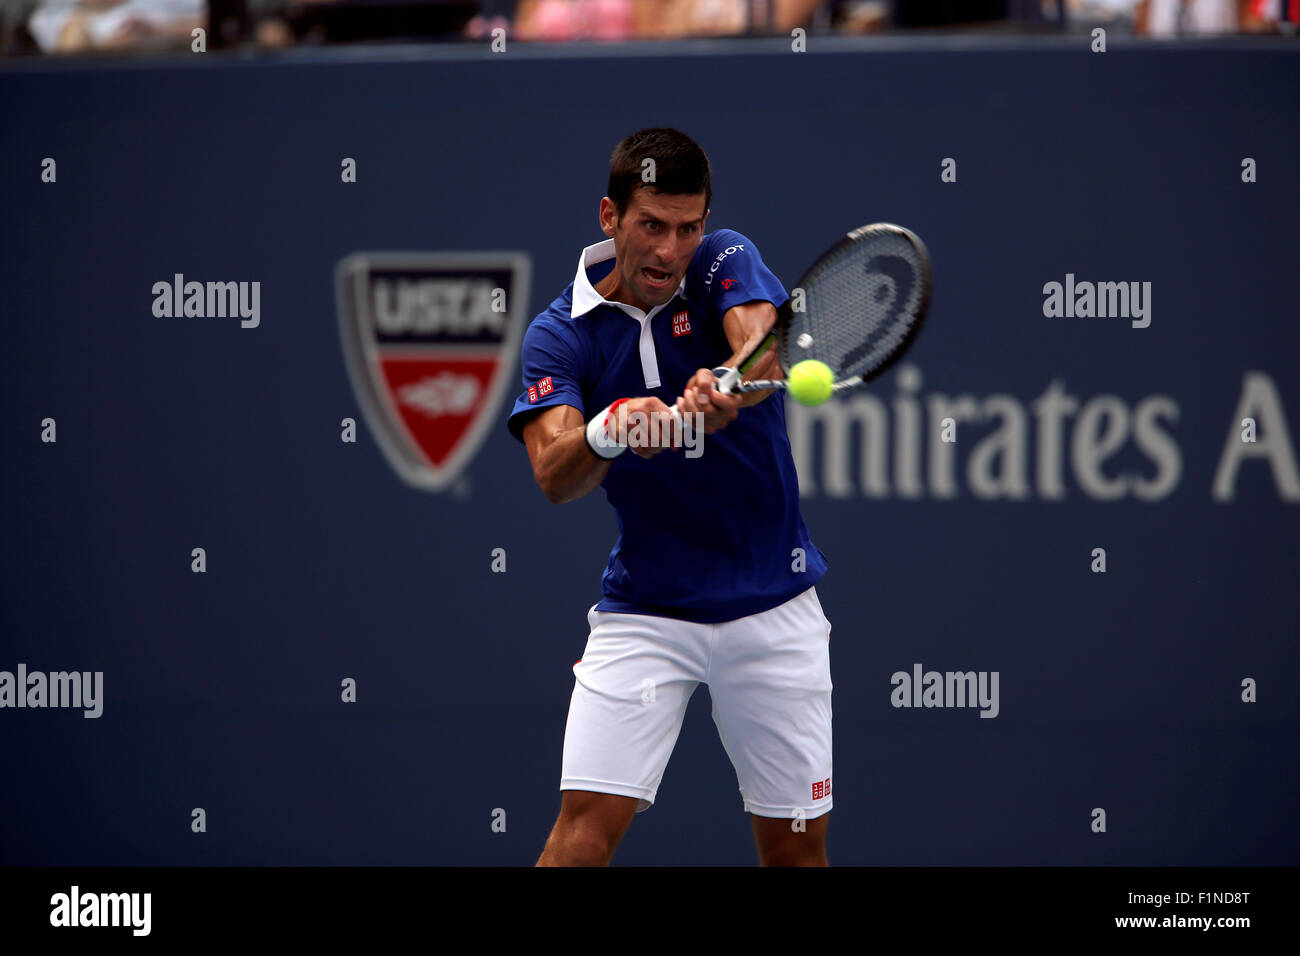 New York, USA. 4th September, 2015. Novak Djokovic during his third round match against Andreas Seppi of Italy at - Stock Image